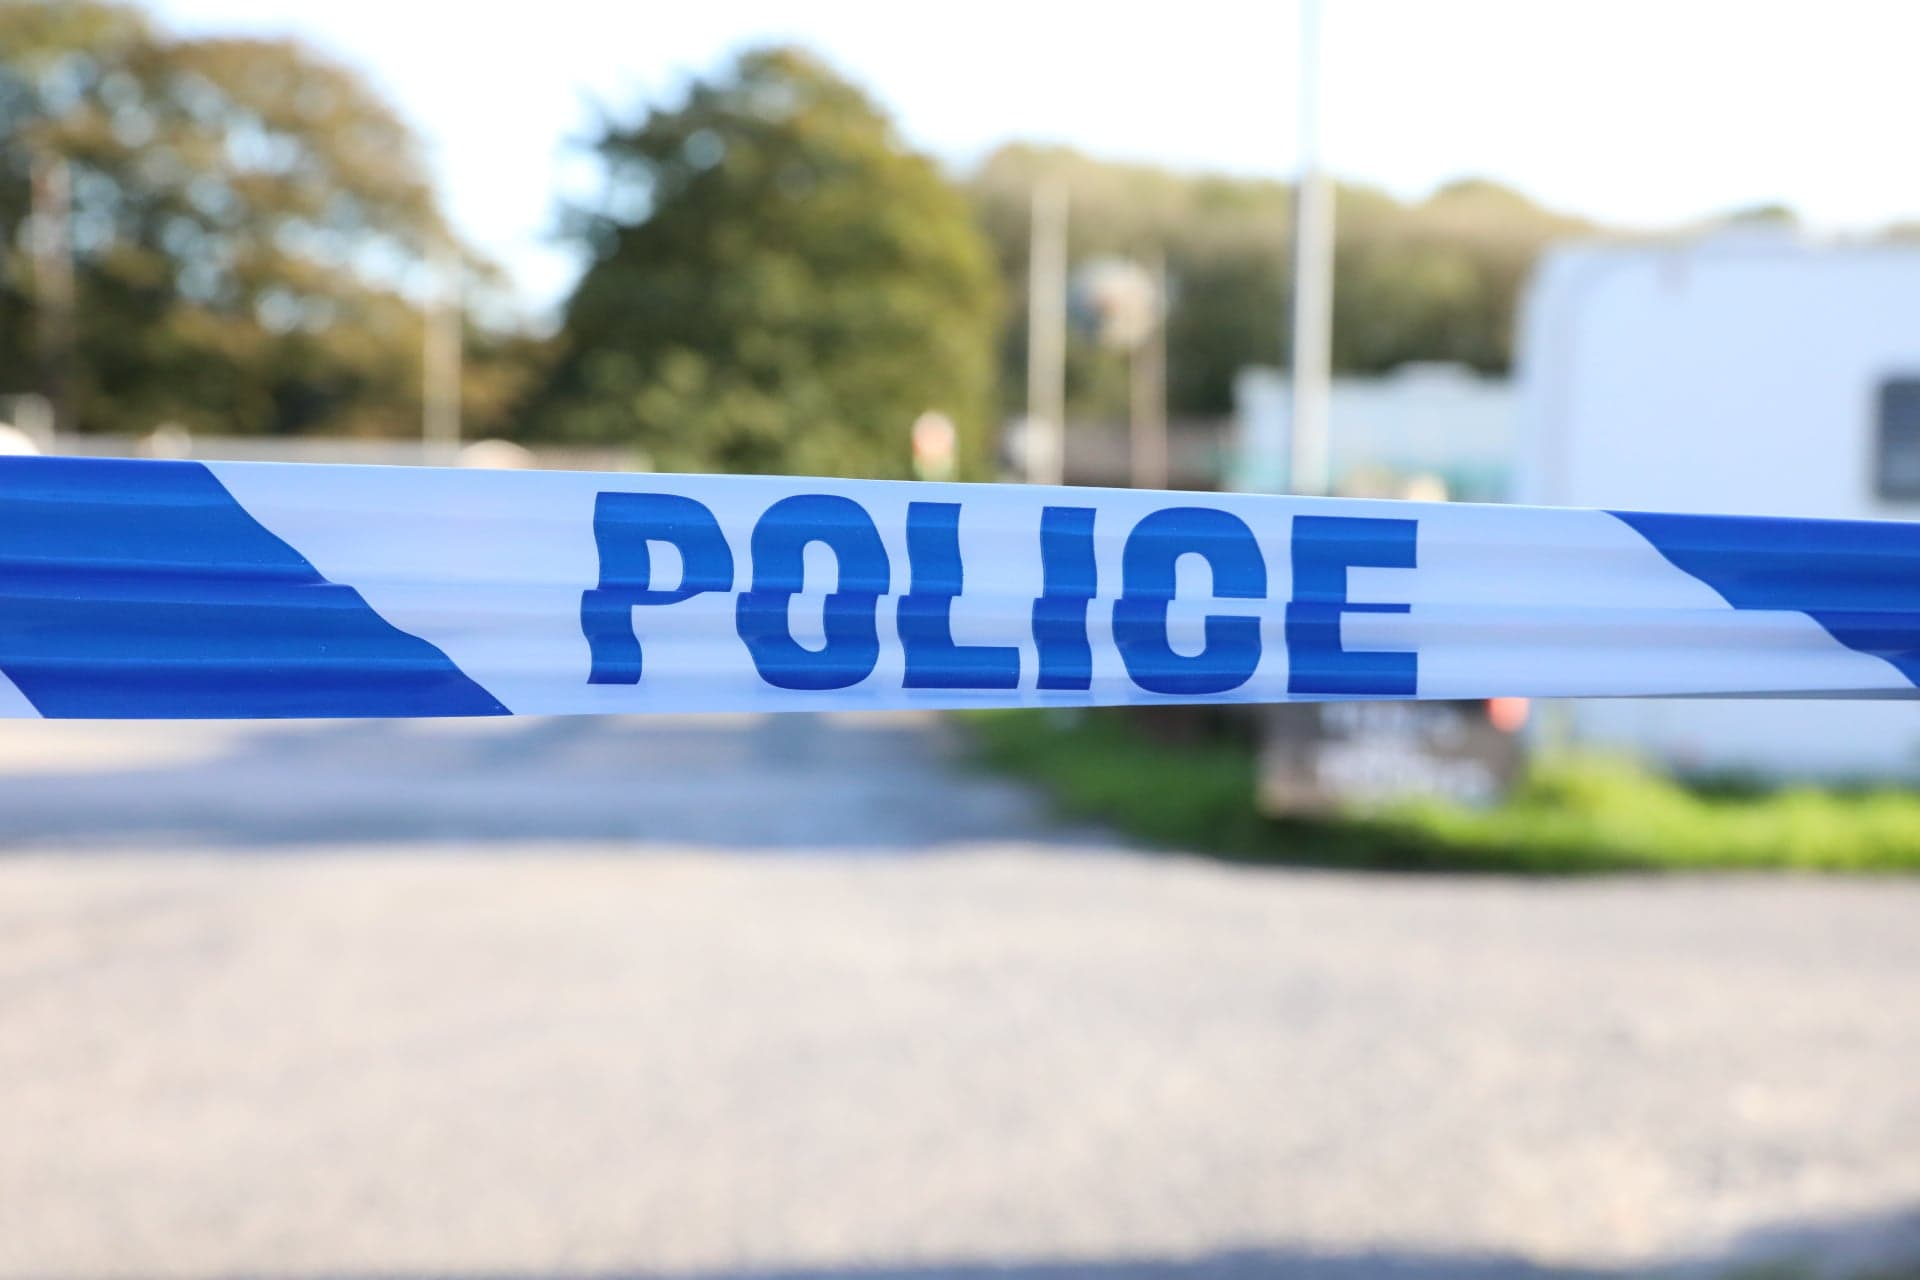 Haverfordwest: Police confirm Palmerston Cross road accident was fatal – The Pembrokeshire Herald